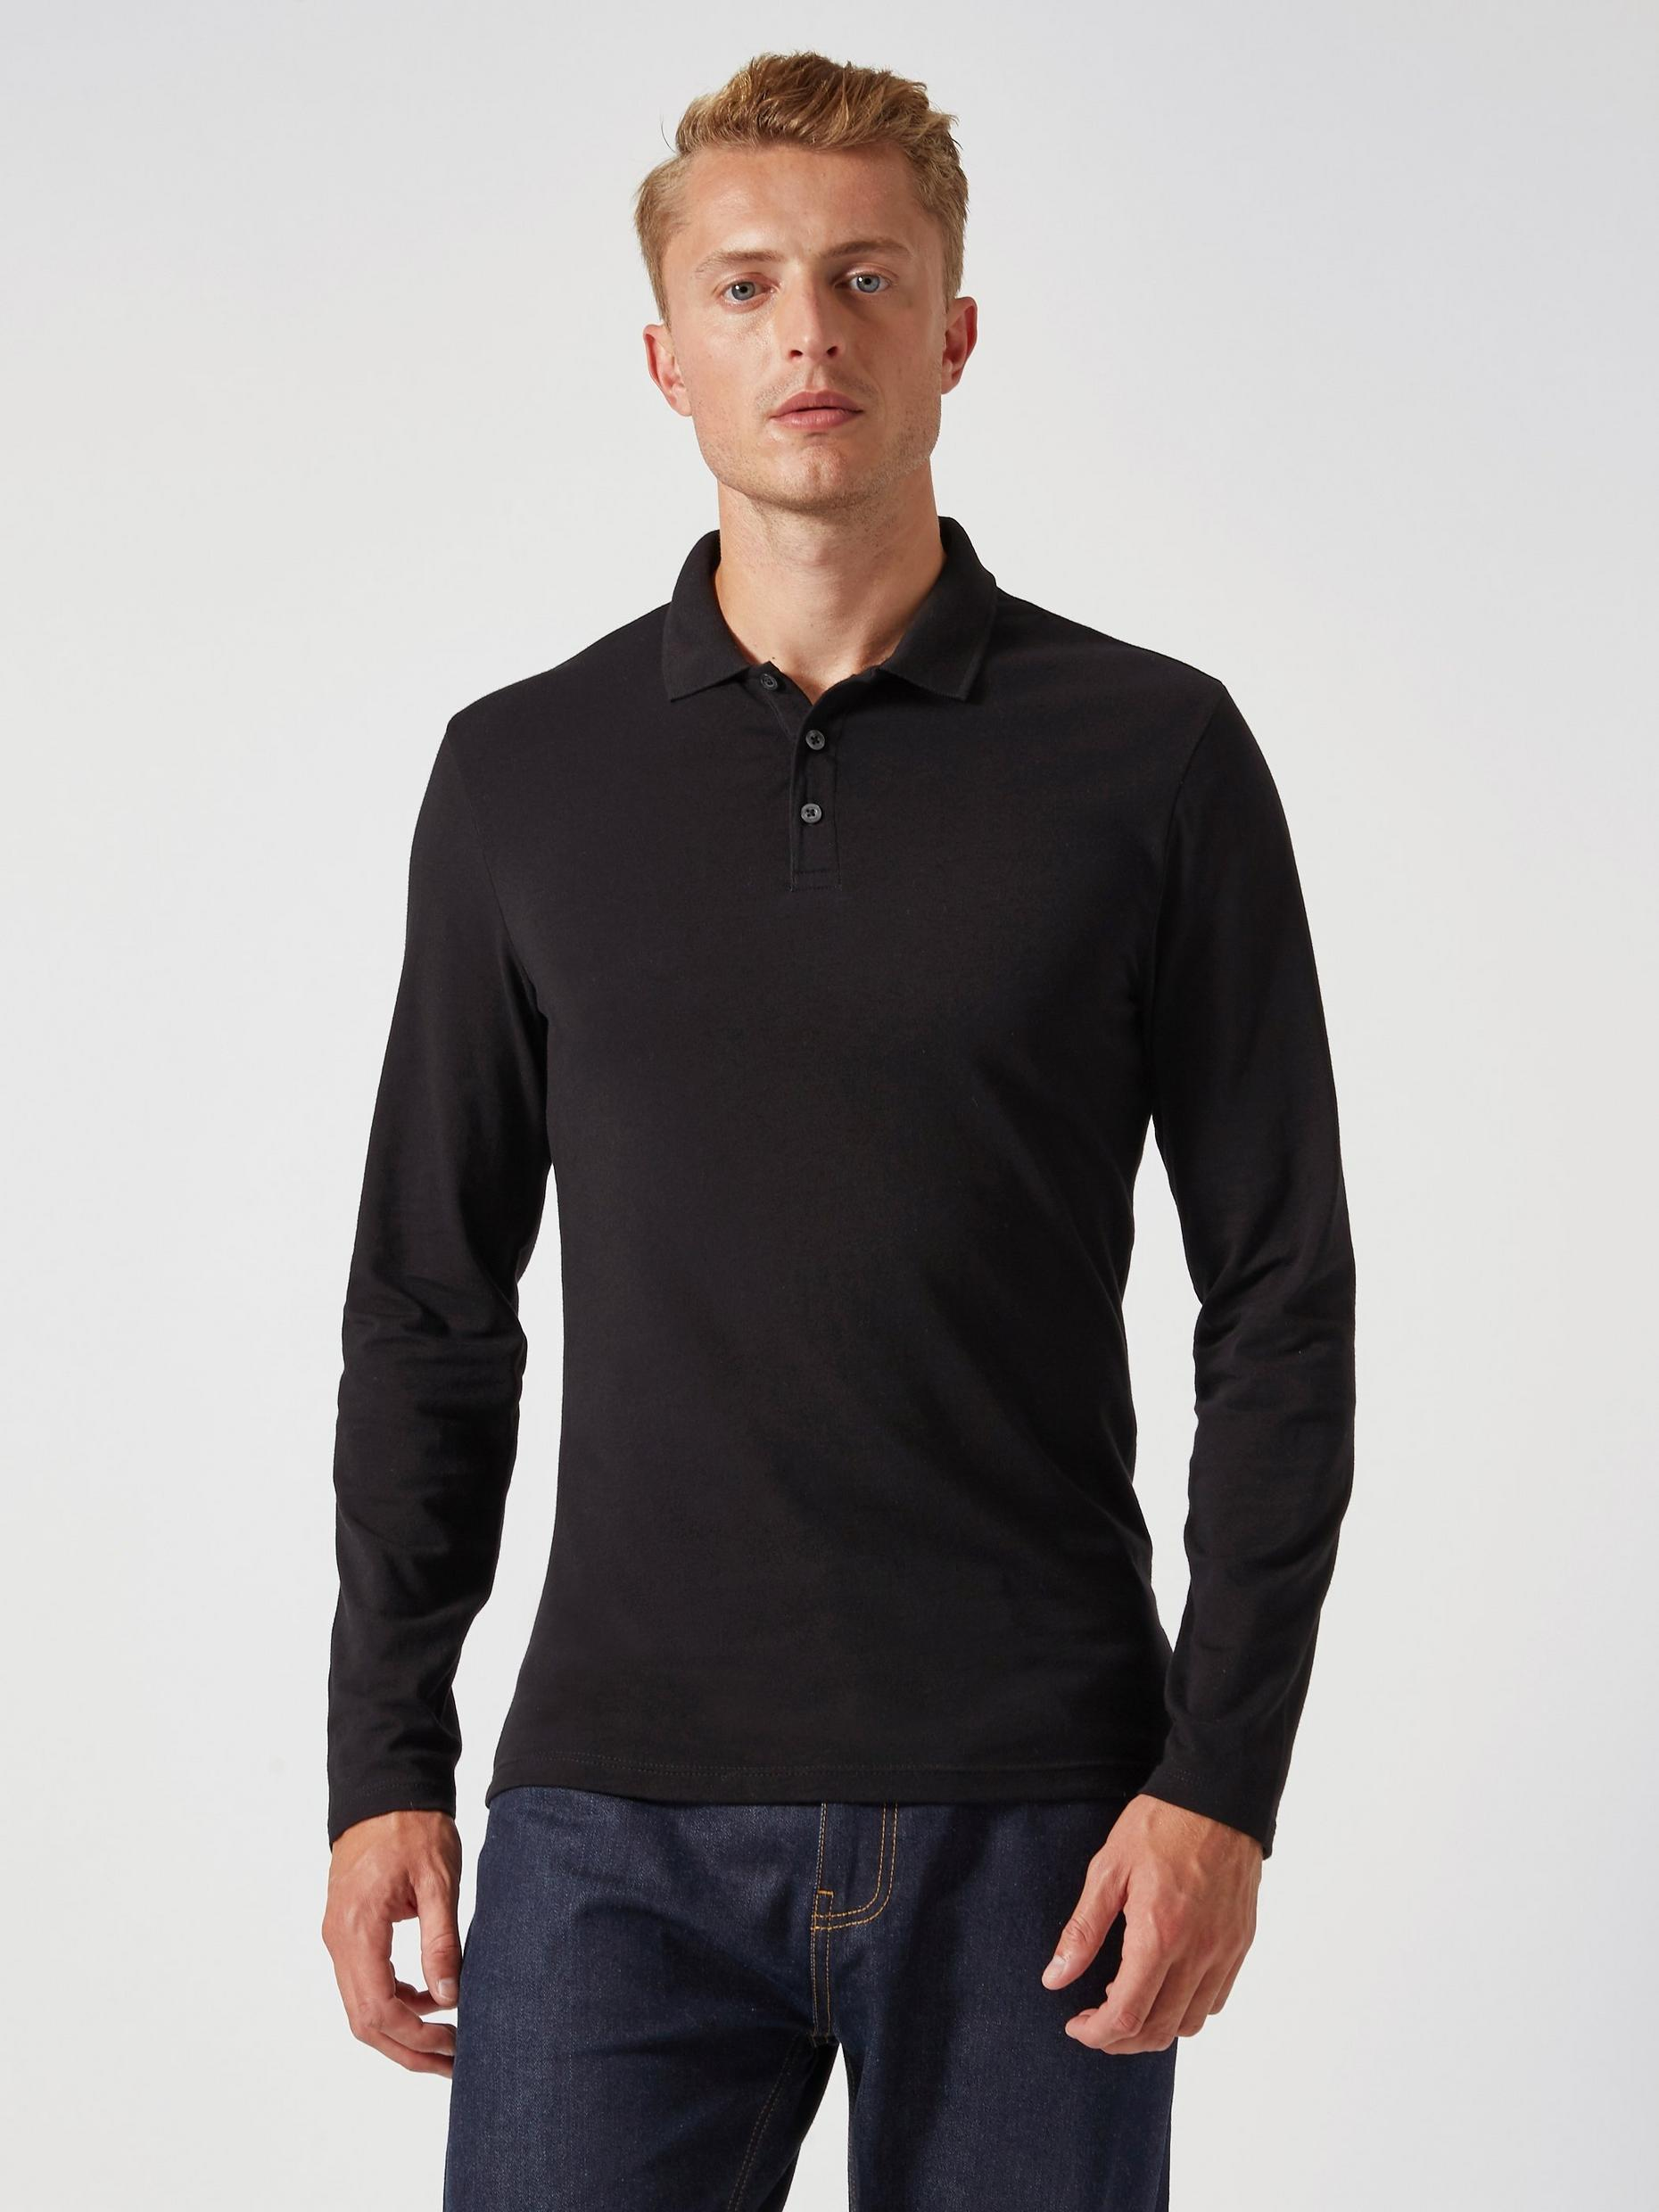 Black Long Sleeved Muscle Fit Polo Shirt